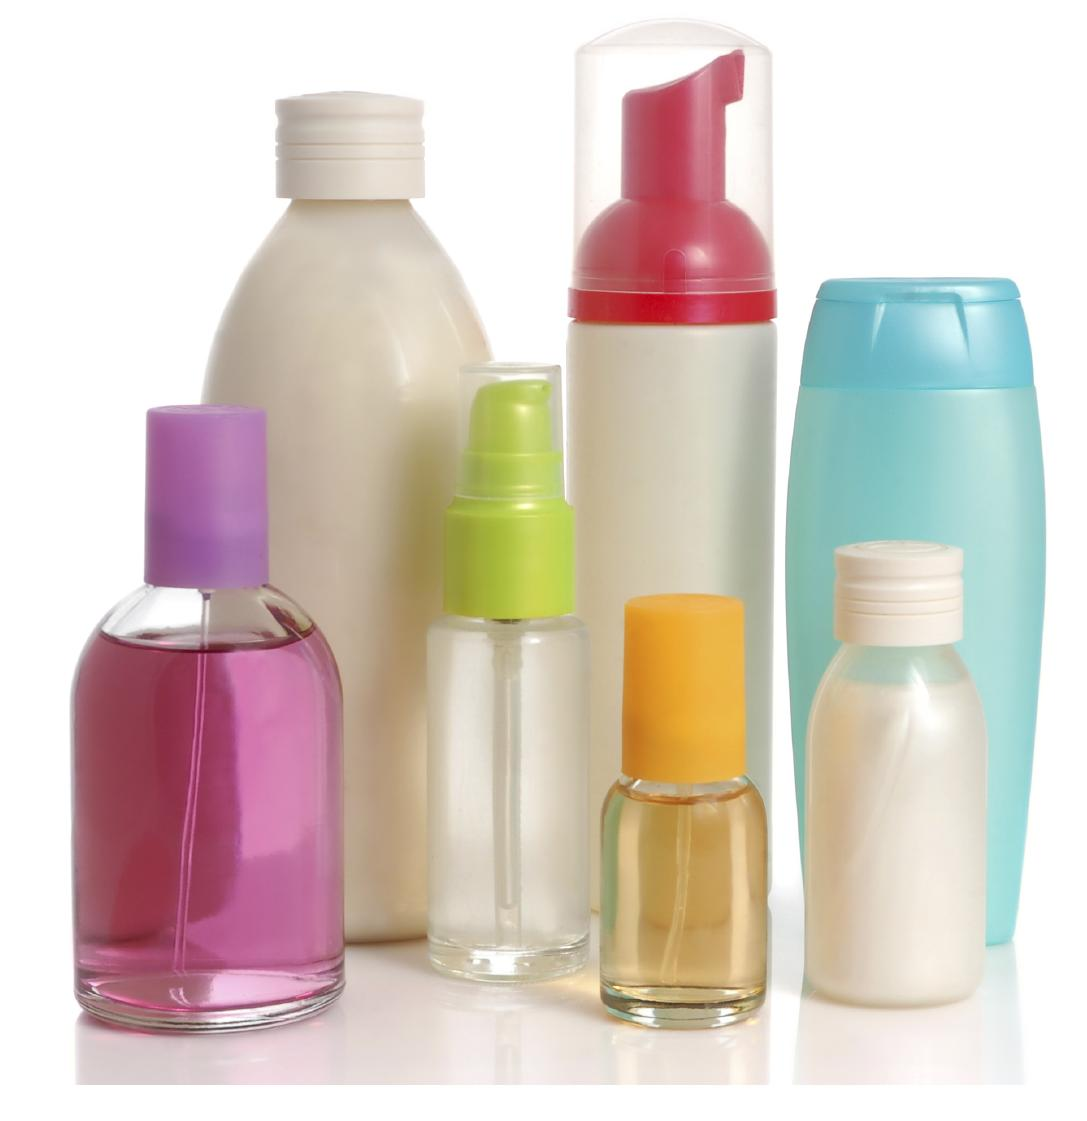 Global Herbal Beauty Products Market